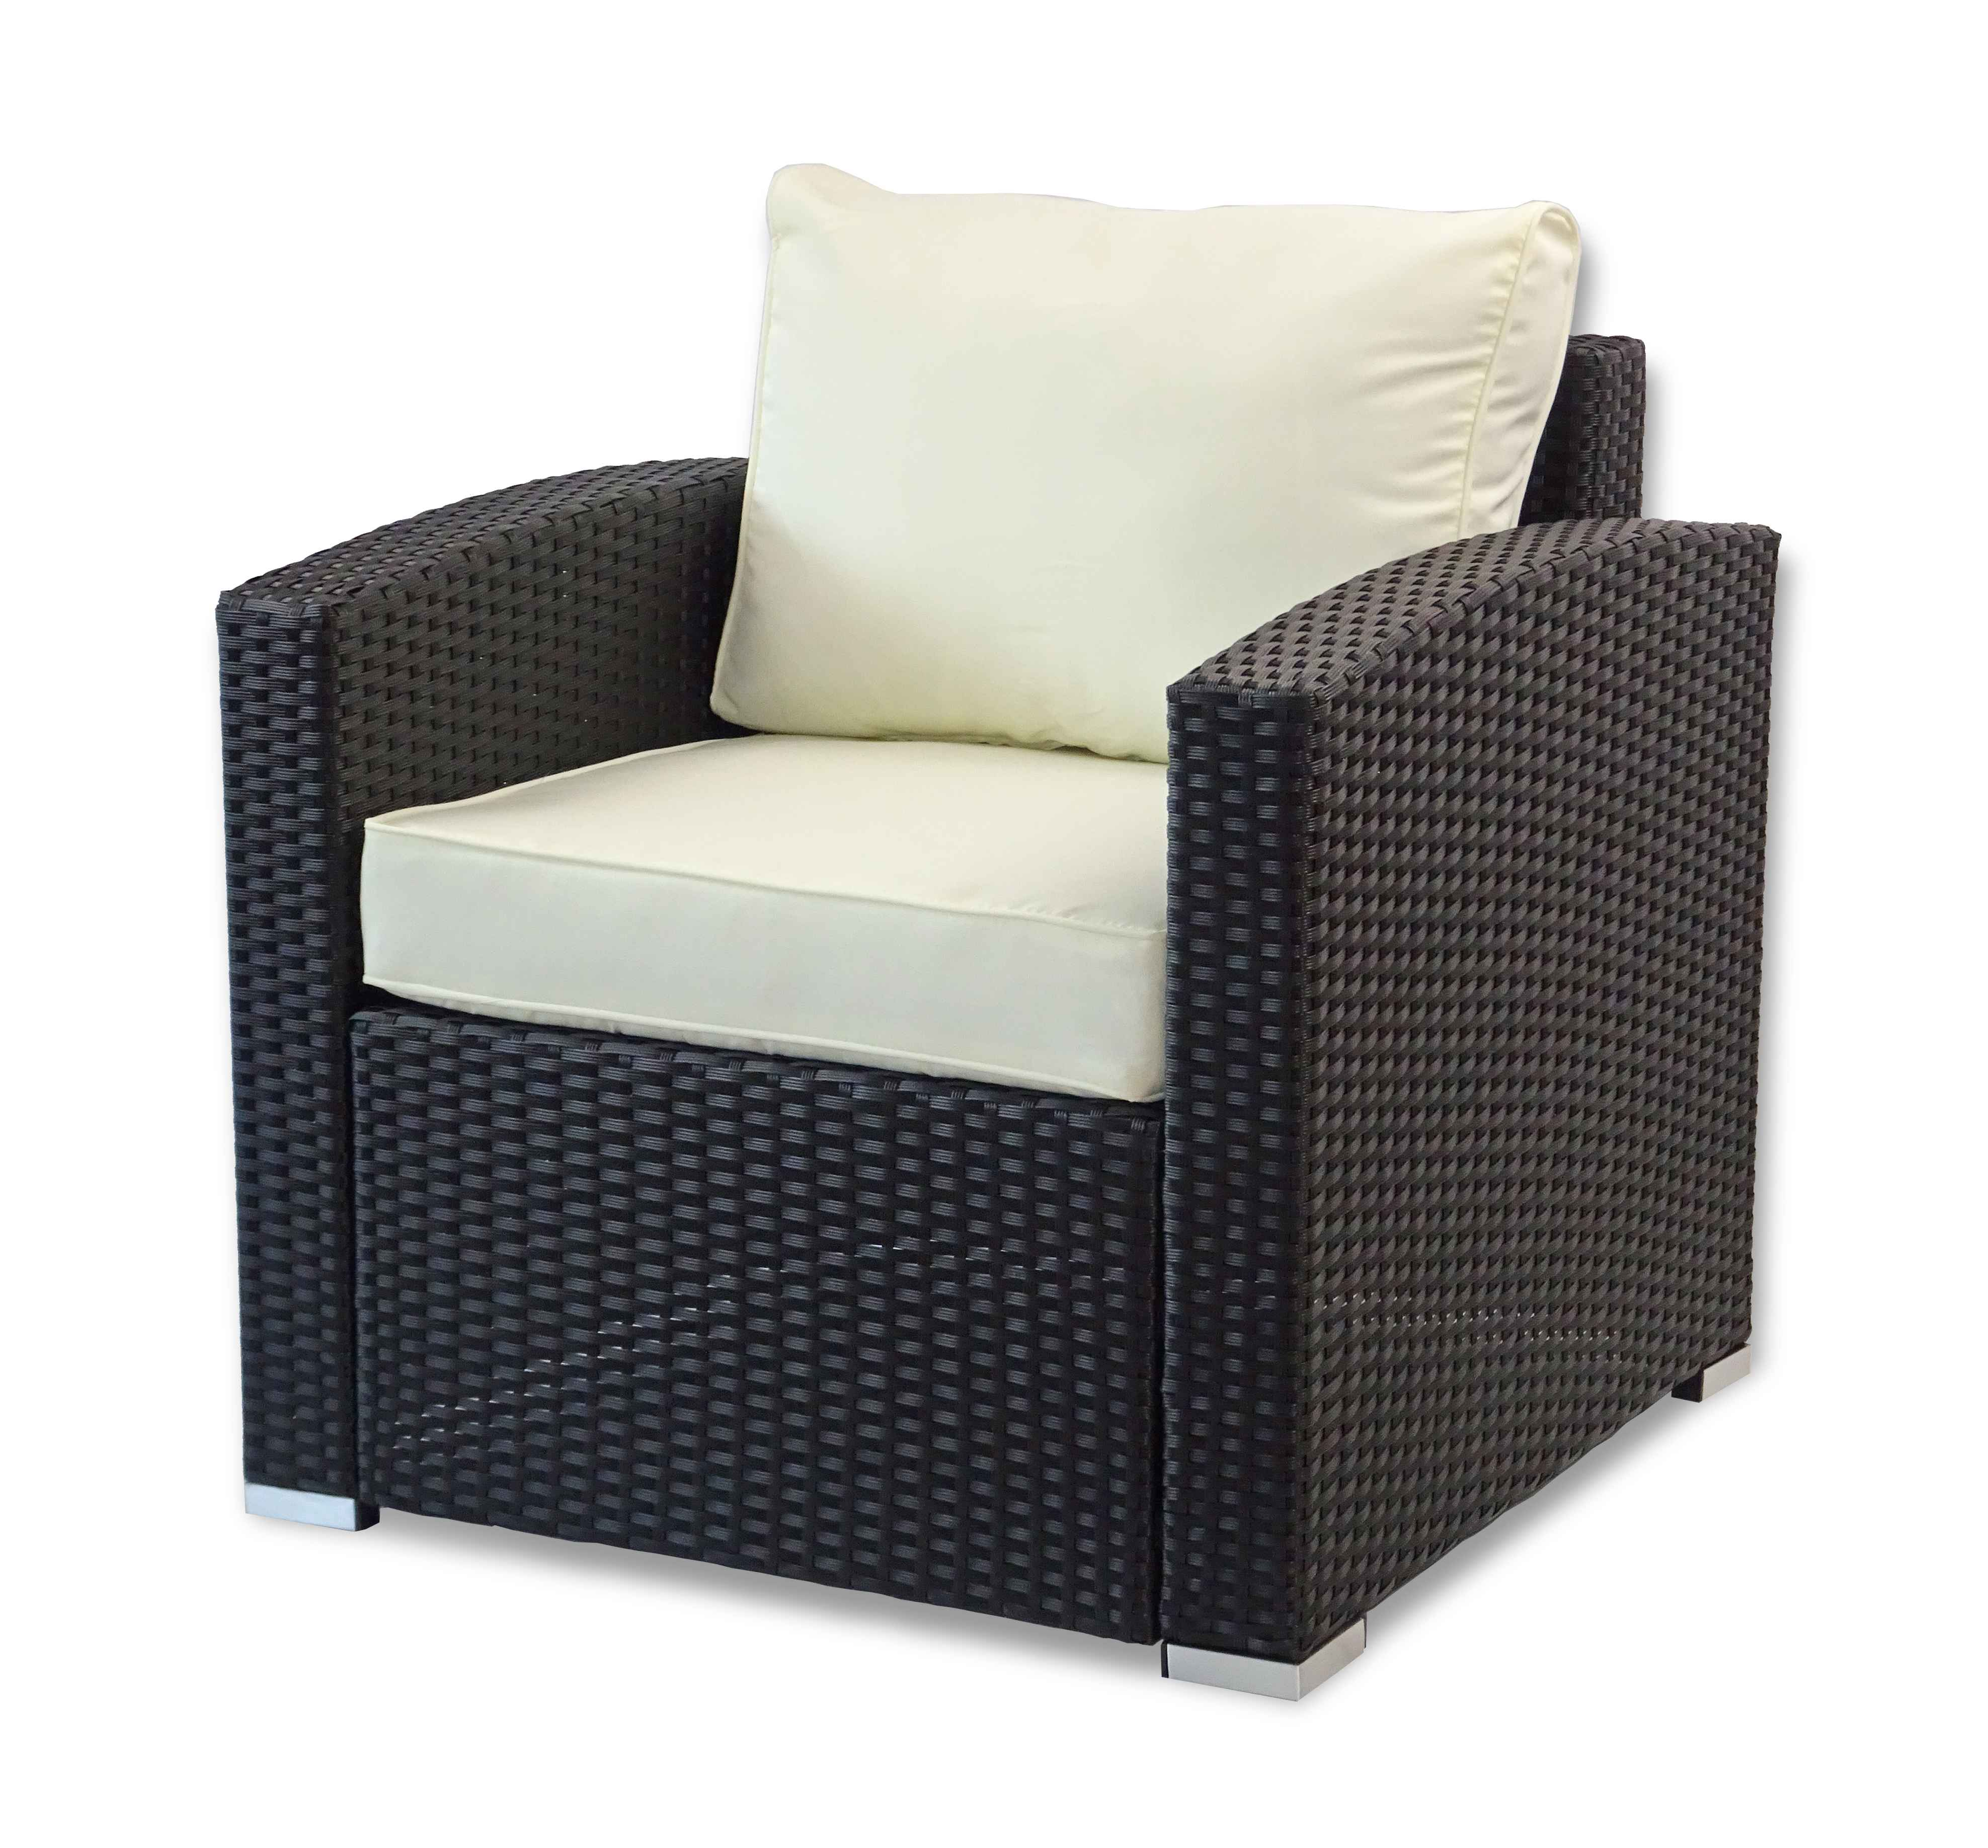 wicker chair seat cushion covers how to recane a buy lounge outdoor armchair in usa best price free